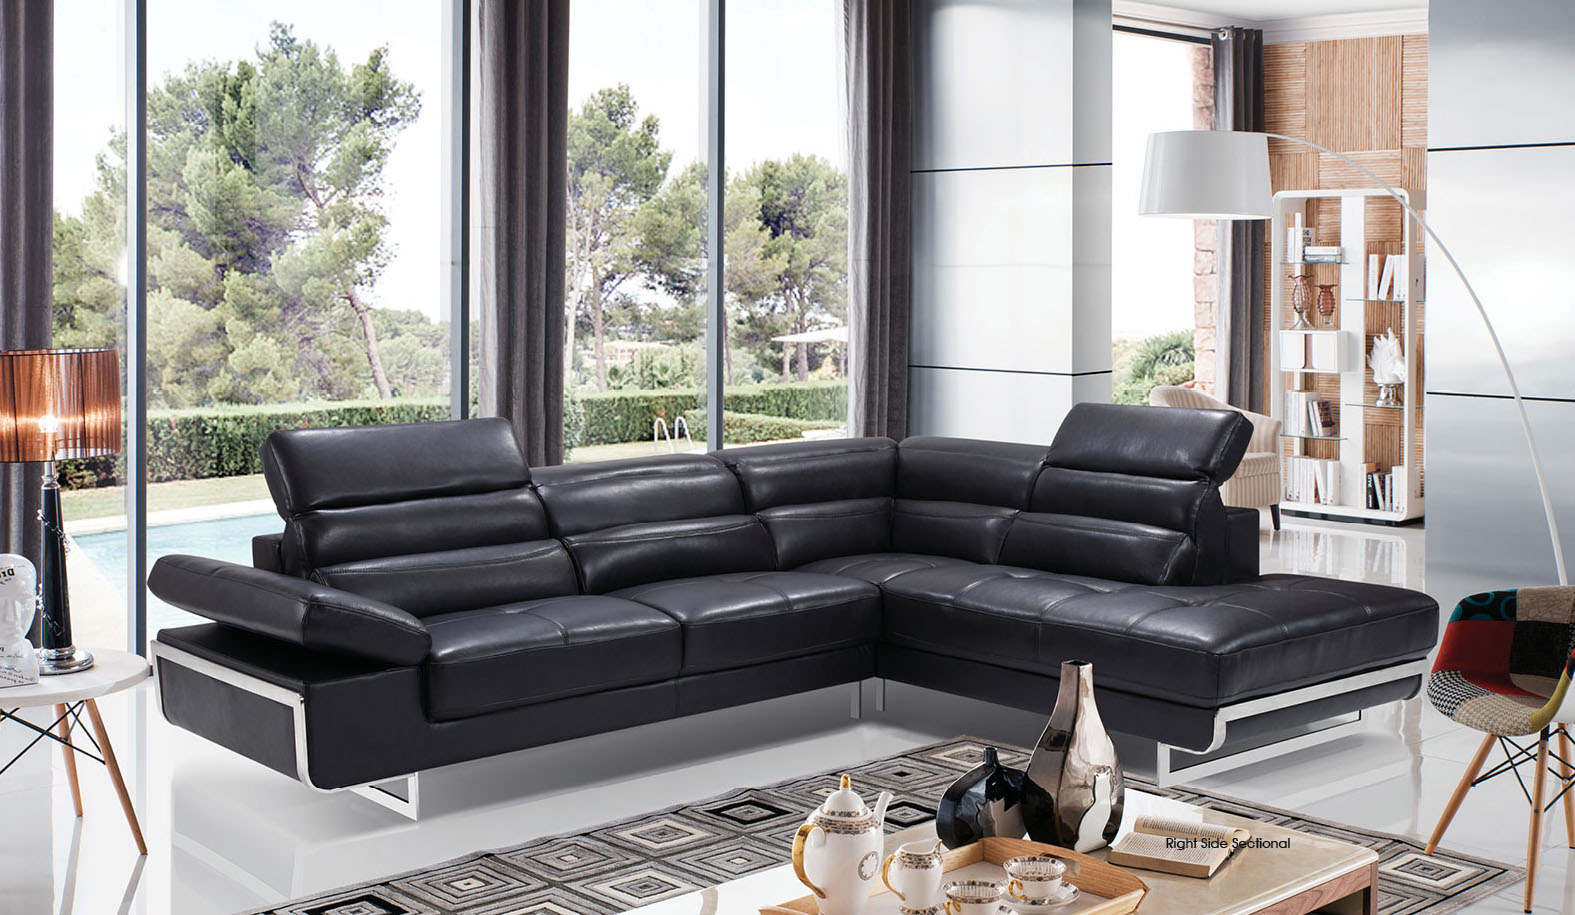 High-class Italian Leather Living Room Furniture